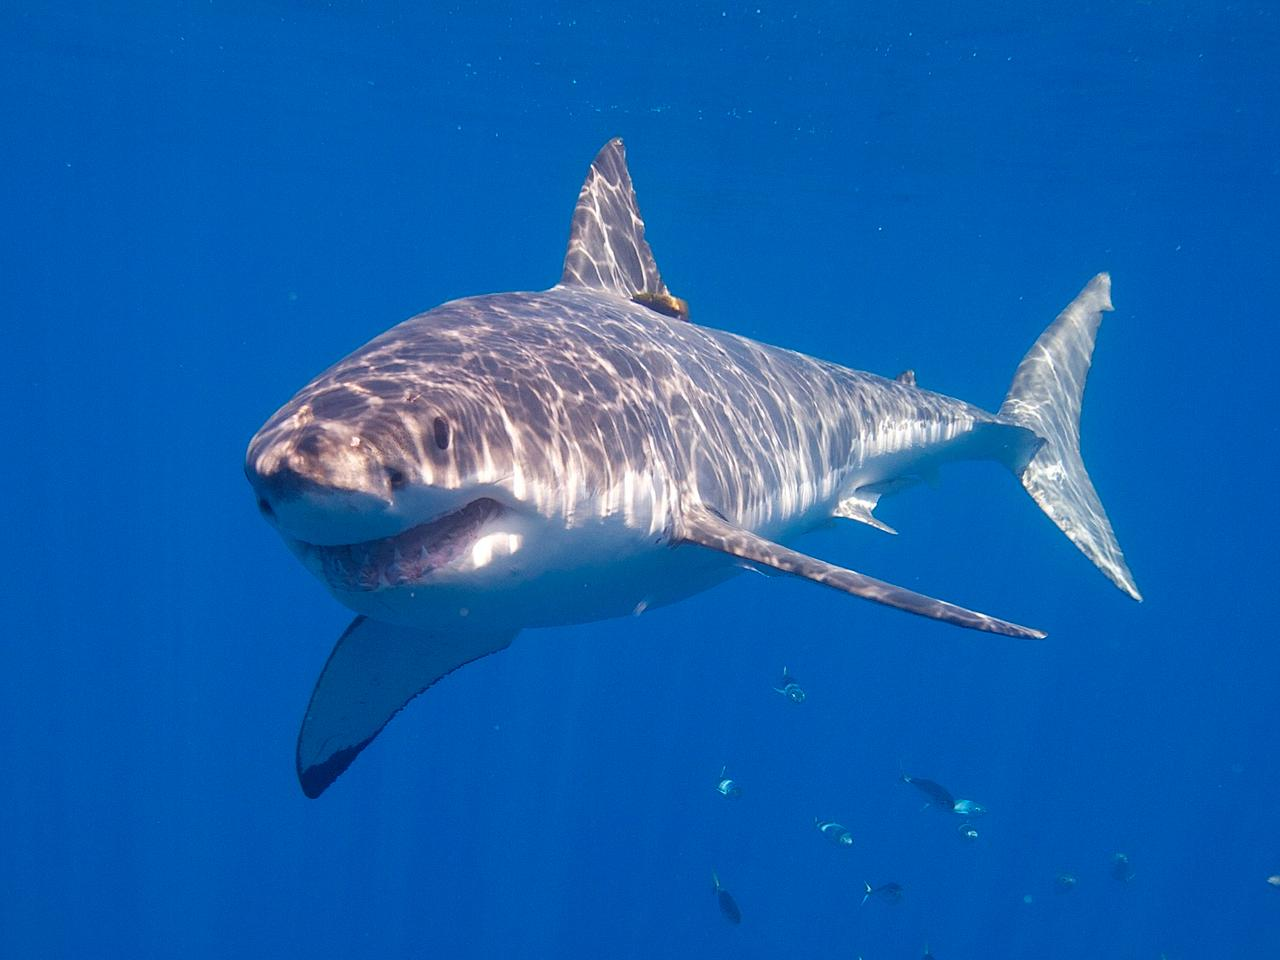 The setup stopped great white sharks from taking the bait 10 out of 10 times on their first approach, but this figure dropped to nine out of 10 on subsequent approaches